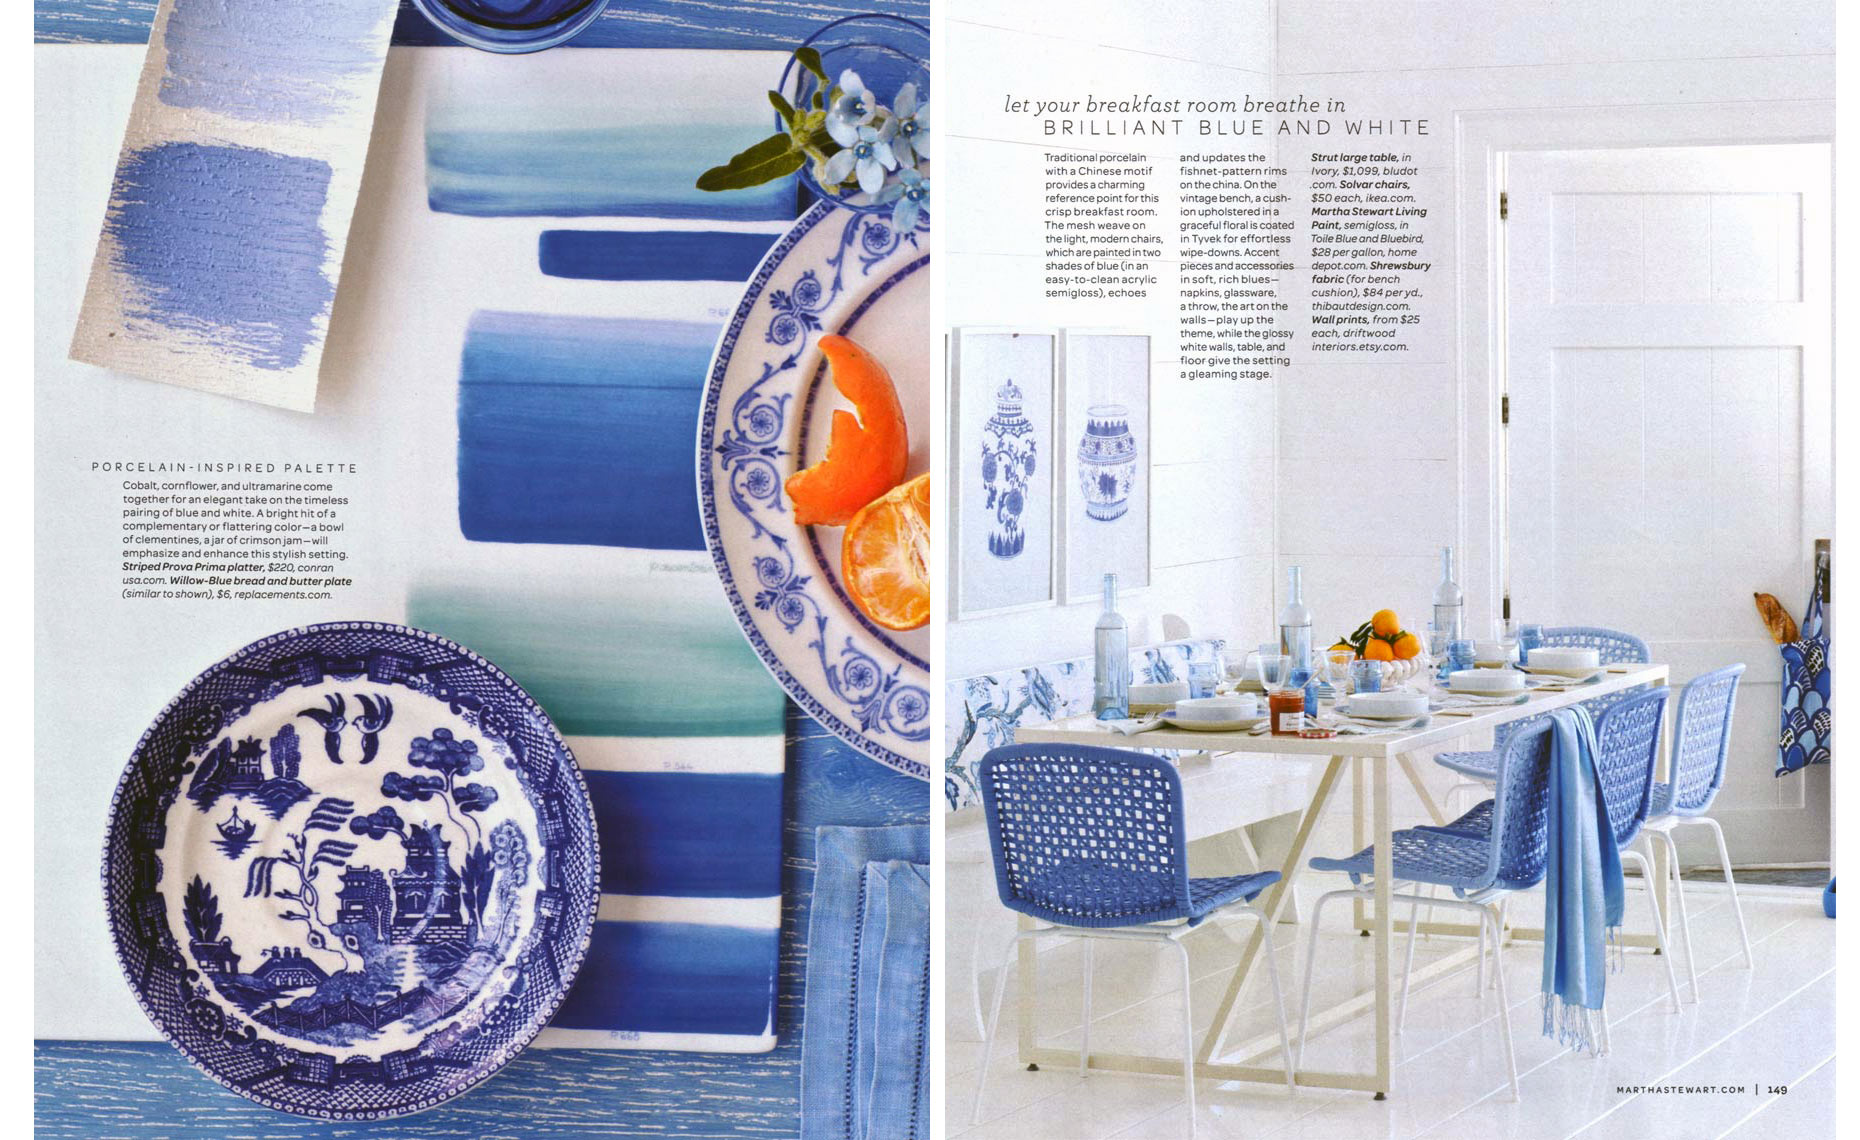 Props, Food & Interiors Stylist Scott Horne